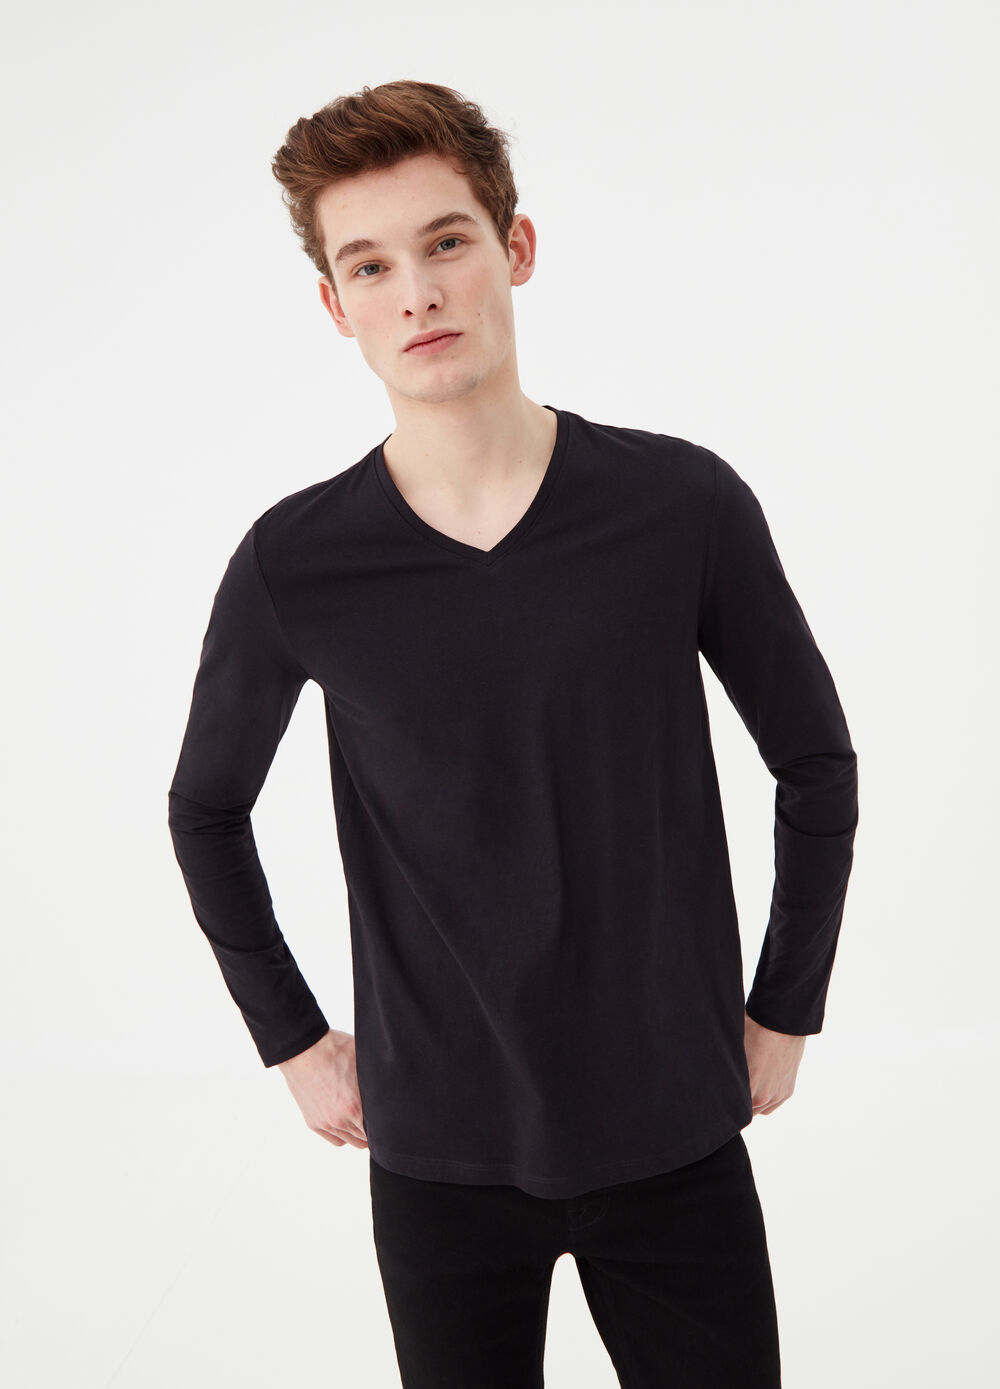 T-shirt manica lunga in cotone jersey